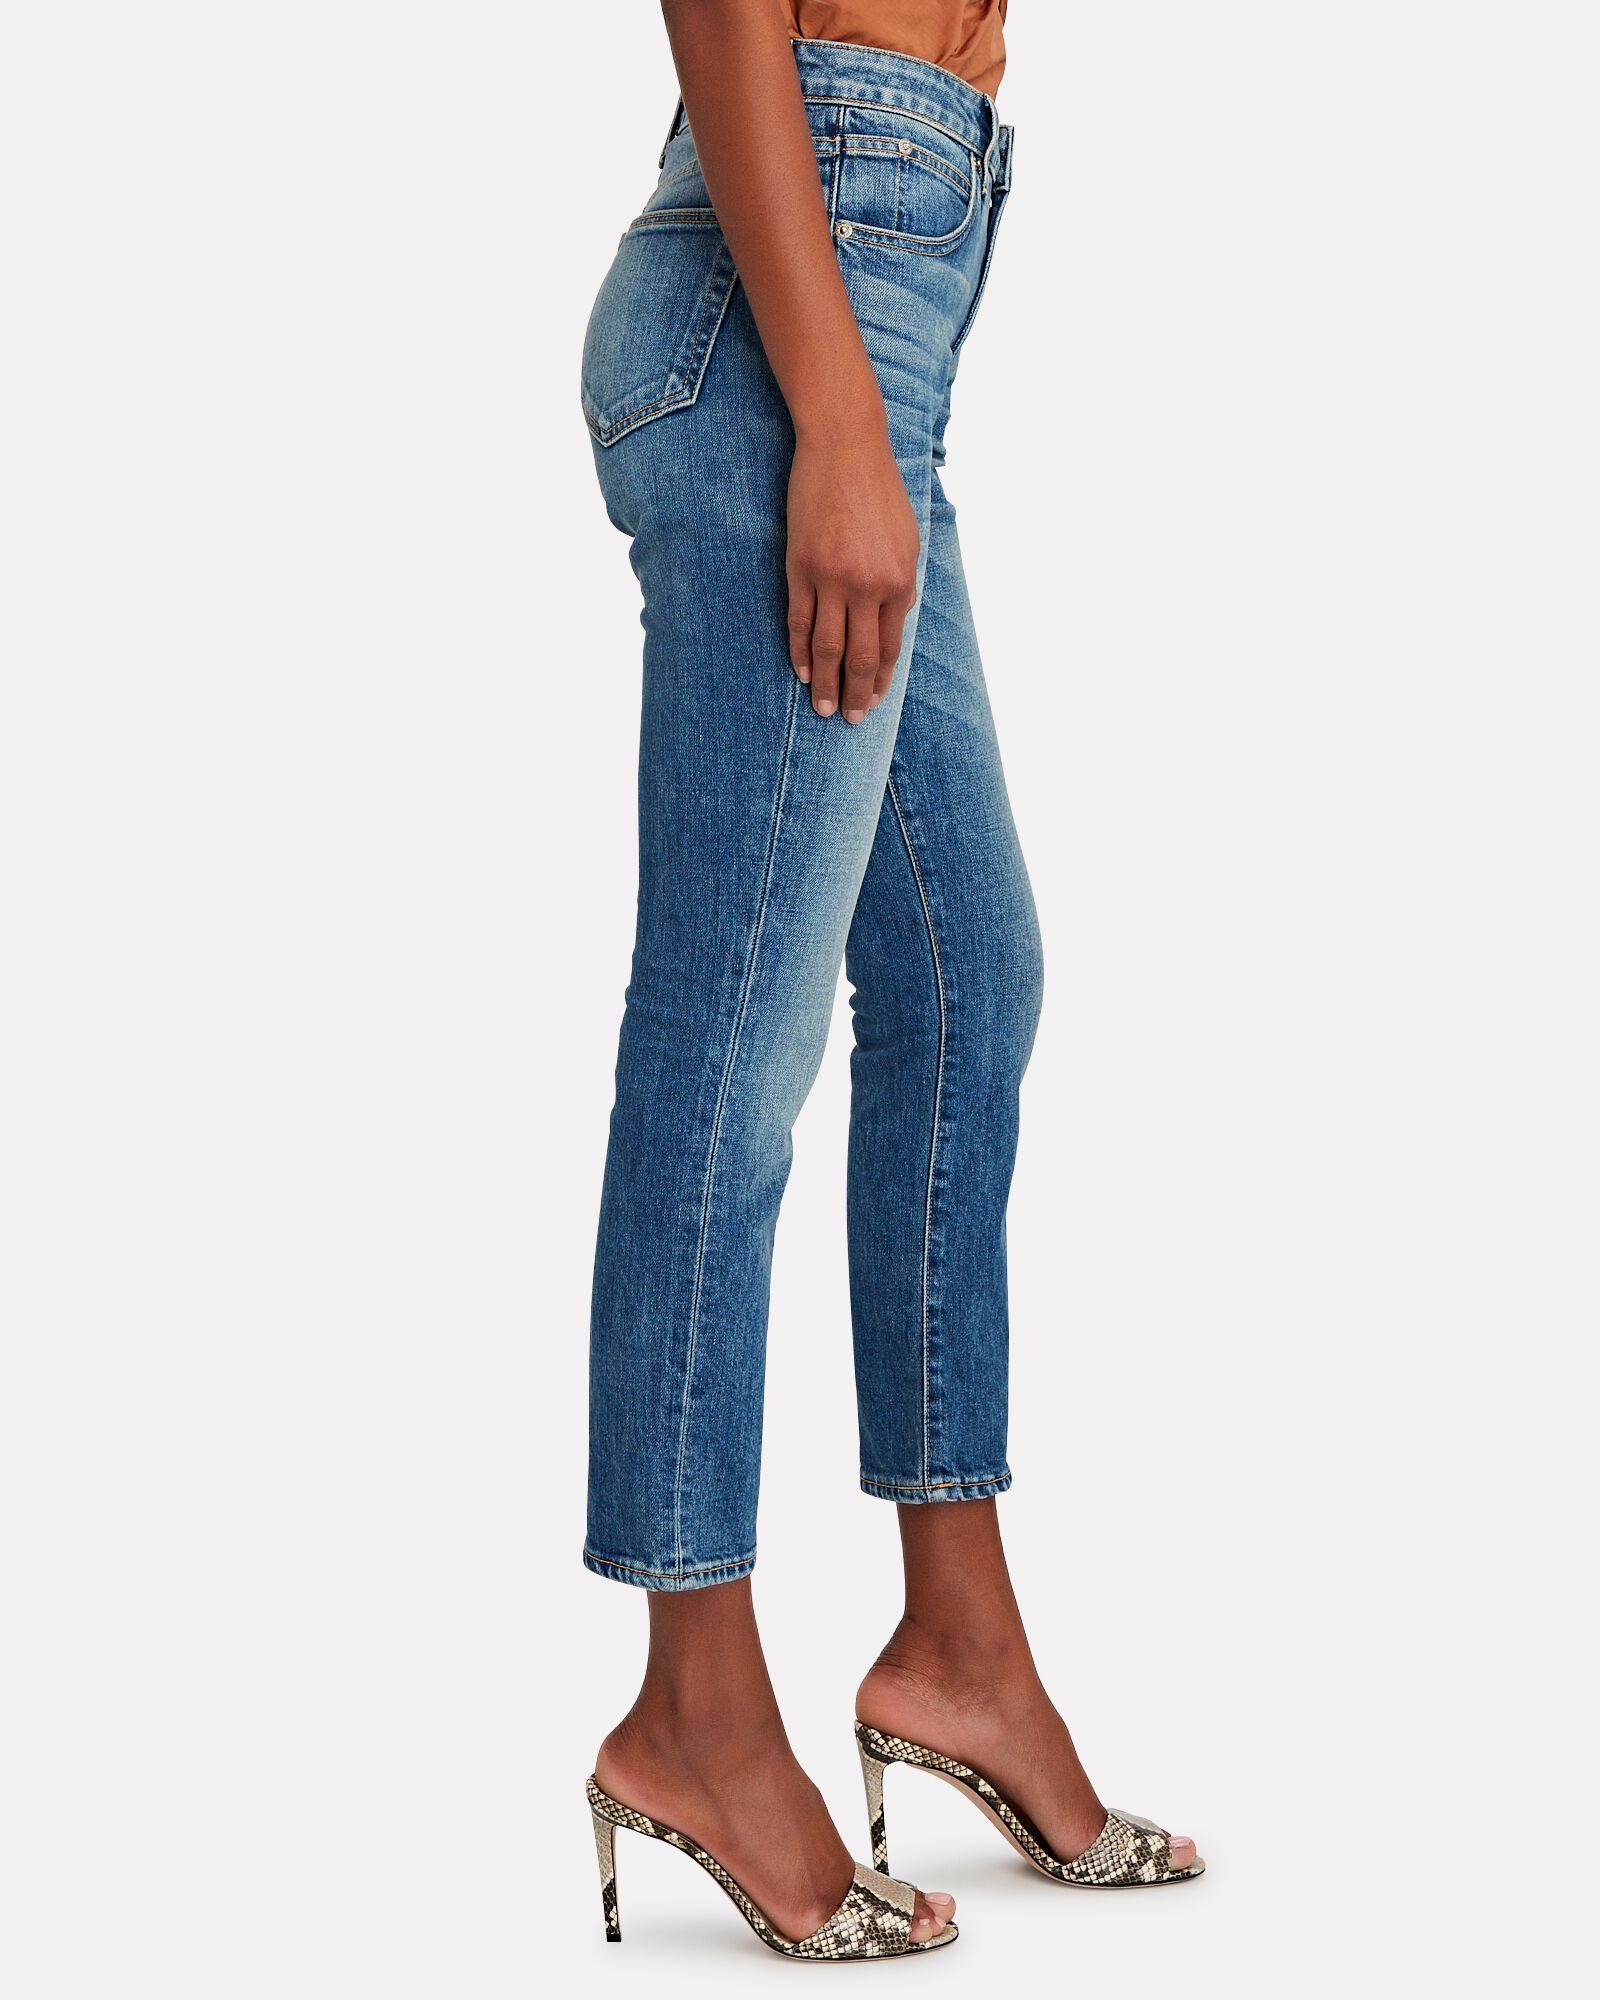 Lou Lou High-Rise Jeans, CALIFORNIA, hi-res